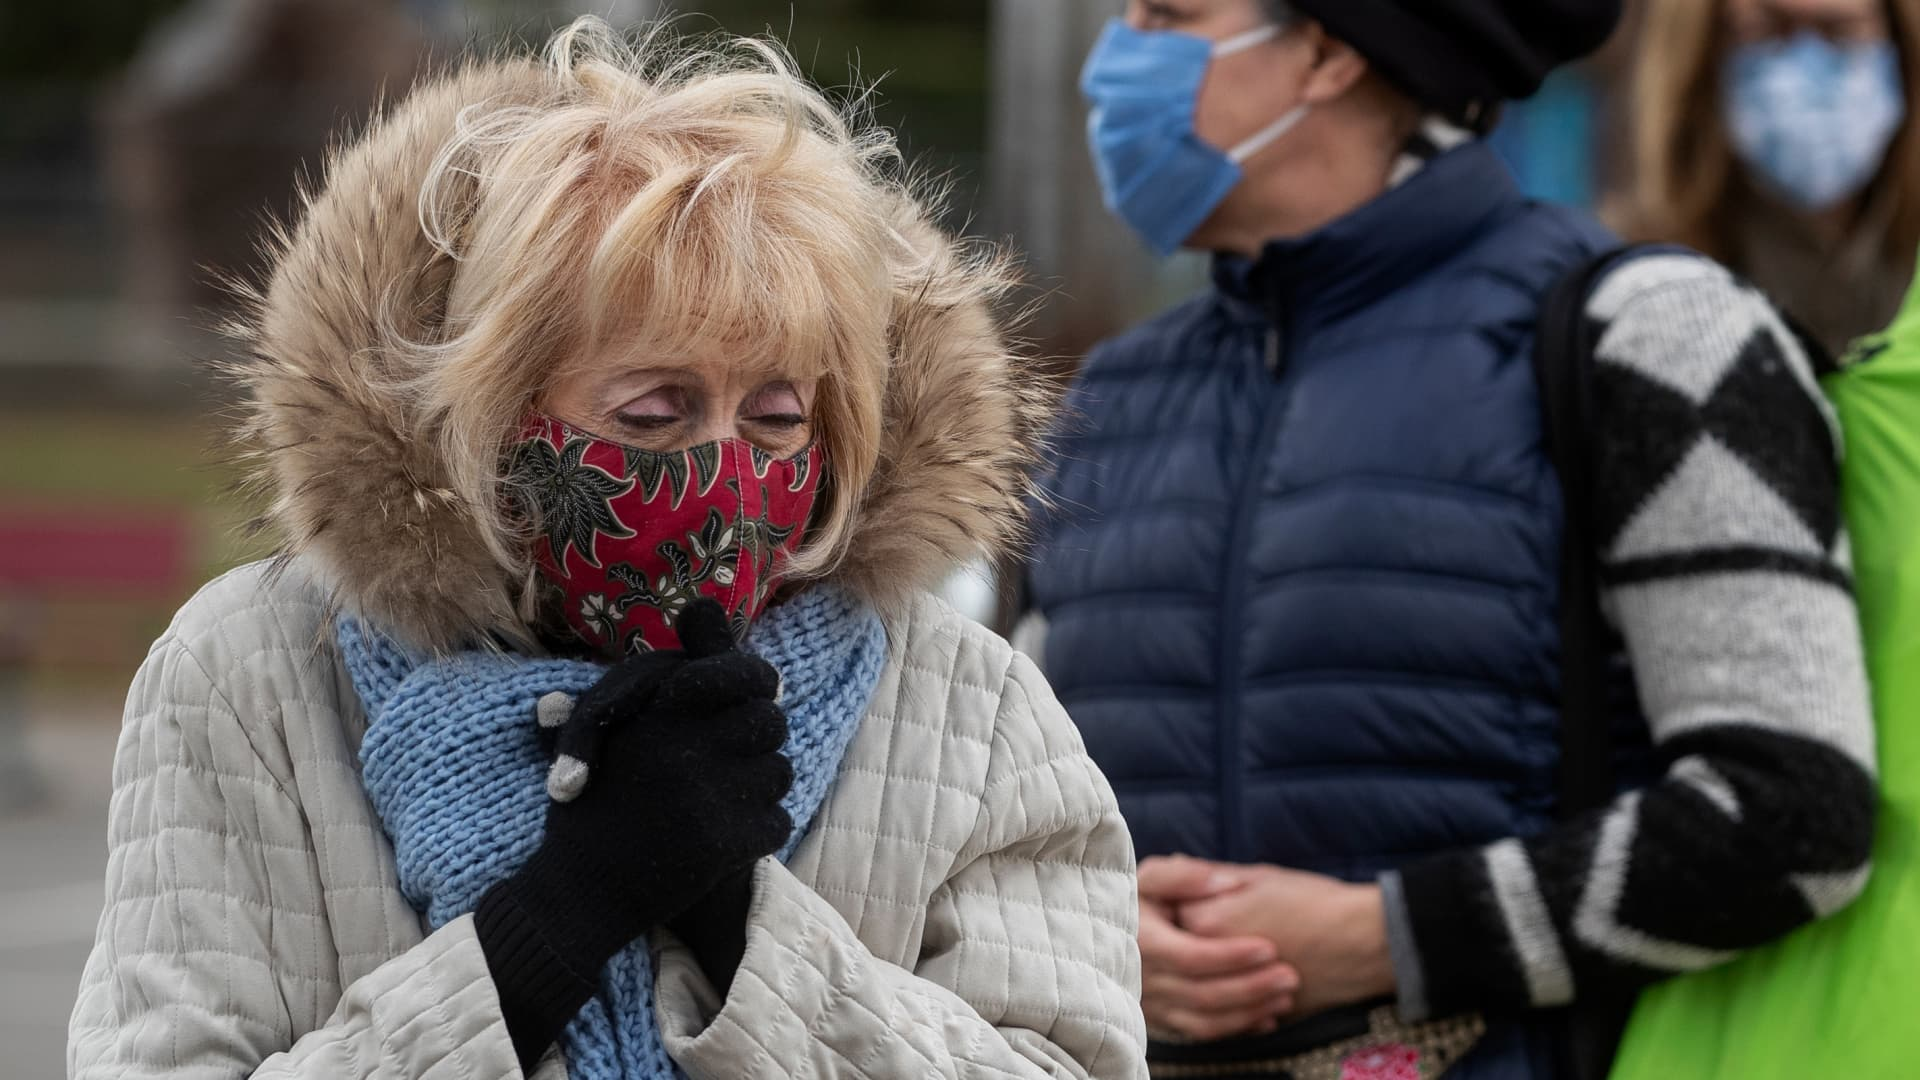 Evelyn Mellman, 82, of Studio City, tries to keep warm while waiting with others in the by appointment only line to get vaccine shots to protect against the coronavirus at the Balboa Sports Complex in Encino.